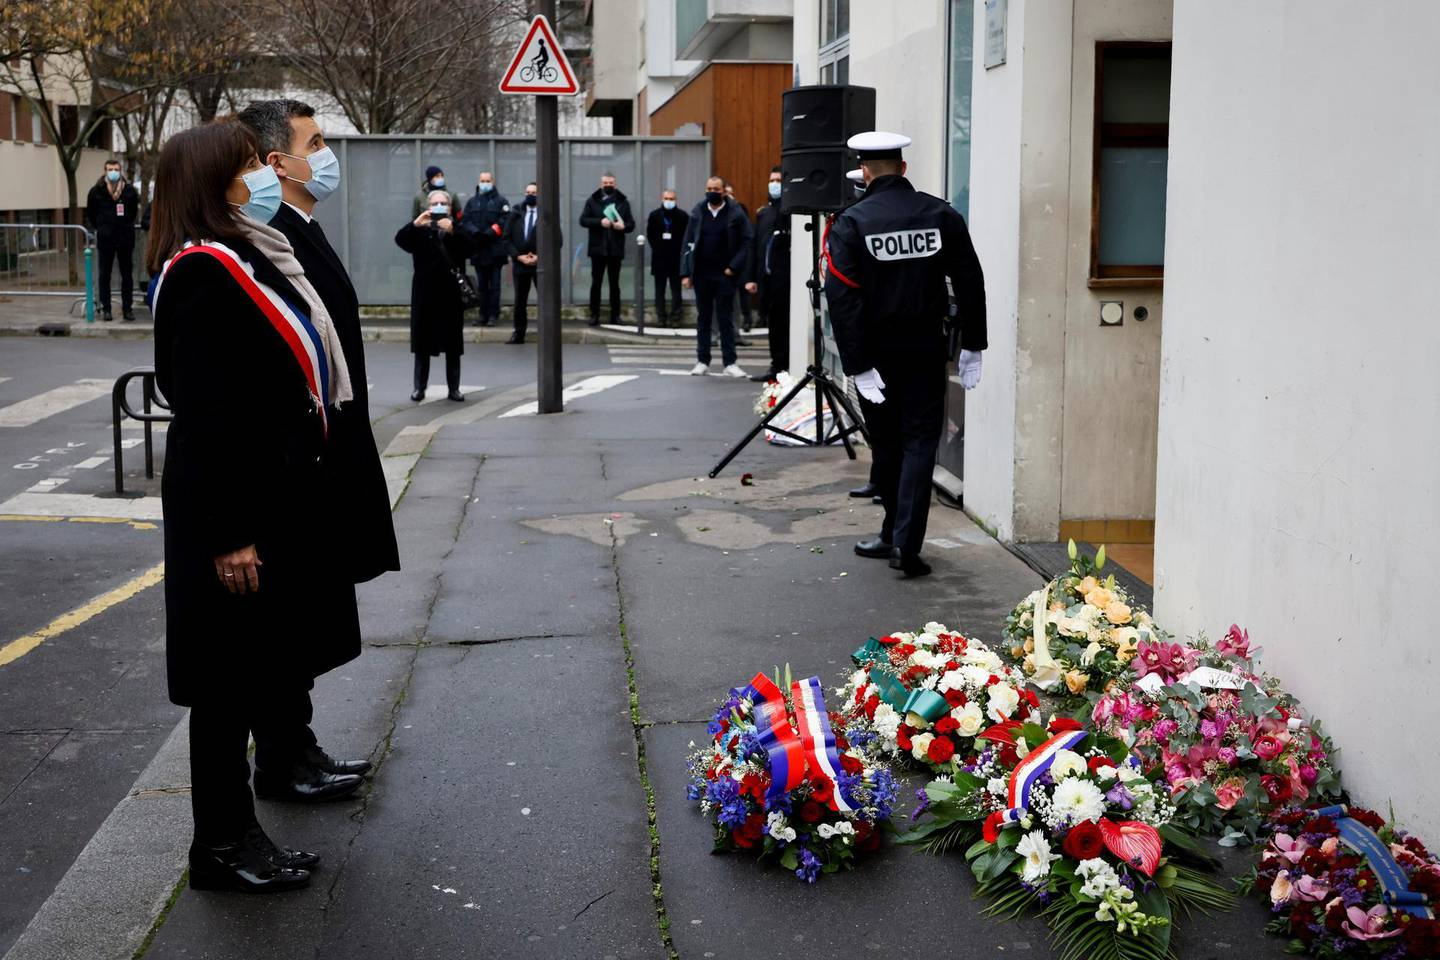 epa08924239 (From L) French Interior Minister Gerald Darmanin and Mayor of Paris Anne Hidalgo pay their respects outside Charlie Hebdo's former offices in Paris, France, 07 January 2021, during a ceremony marking the sixth anniversary of the jihadist attack of the satirical magazine that killed 12 people. The attack on the weekly -- with its long history of mocking Islam and other religions -- was the first in a series of assaults that have claimed more than 250 lives since 07 January 2015, mostly at the hands of young French-born jihadists.  EPA/THOMAS COEX / POOL  MAXPPP OUT